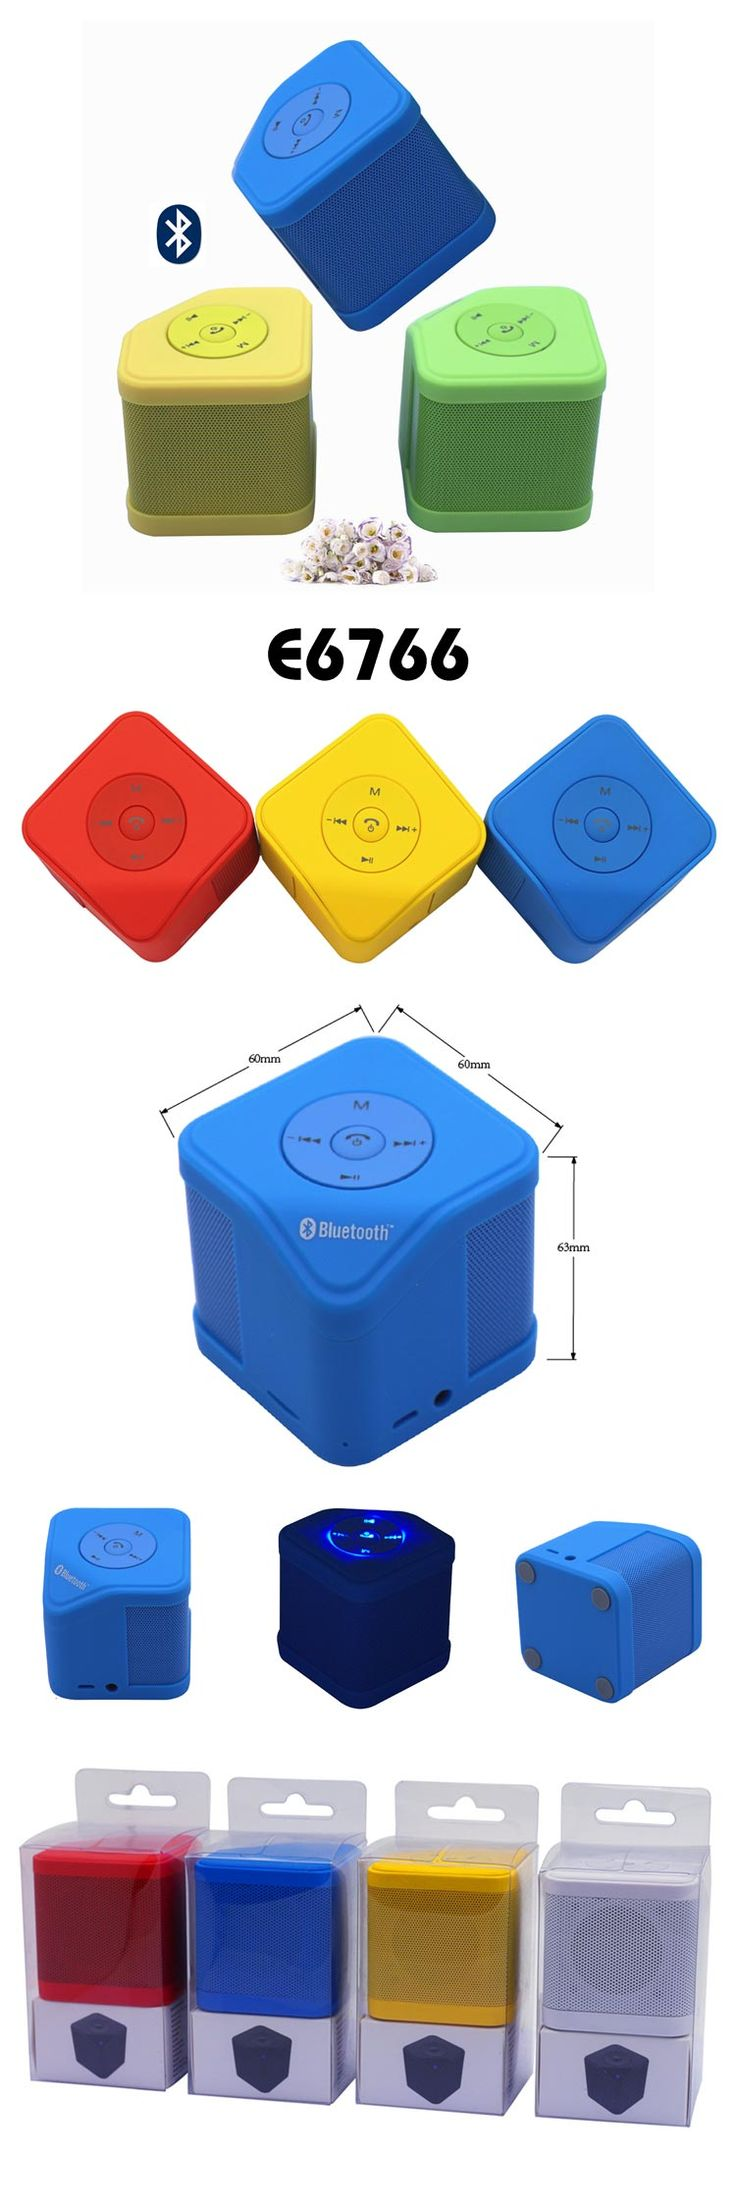 Bluetooth Speaker  * Function:support TF card read/AUX  * Bluetooth version:bluetooth V2.1+EDR Class2 A2DP  * Frequency:2402~2480MH  * Battery :3.7V 450MAH  * Charging voltage: DC 5V Charging time about 2hours  * Transmission distance: 10 meters  * Frequency response: 100HZ~20KHz  * Playing time: about 3-4 hours  * Speaker Specifications:Ф45mm 4Ω 3w  * Size: 60*60*63cm  * Material:PC www.ideagroupigm.com